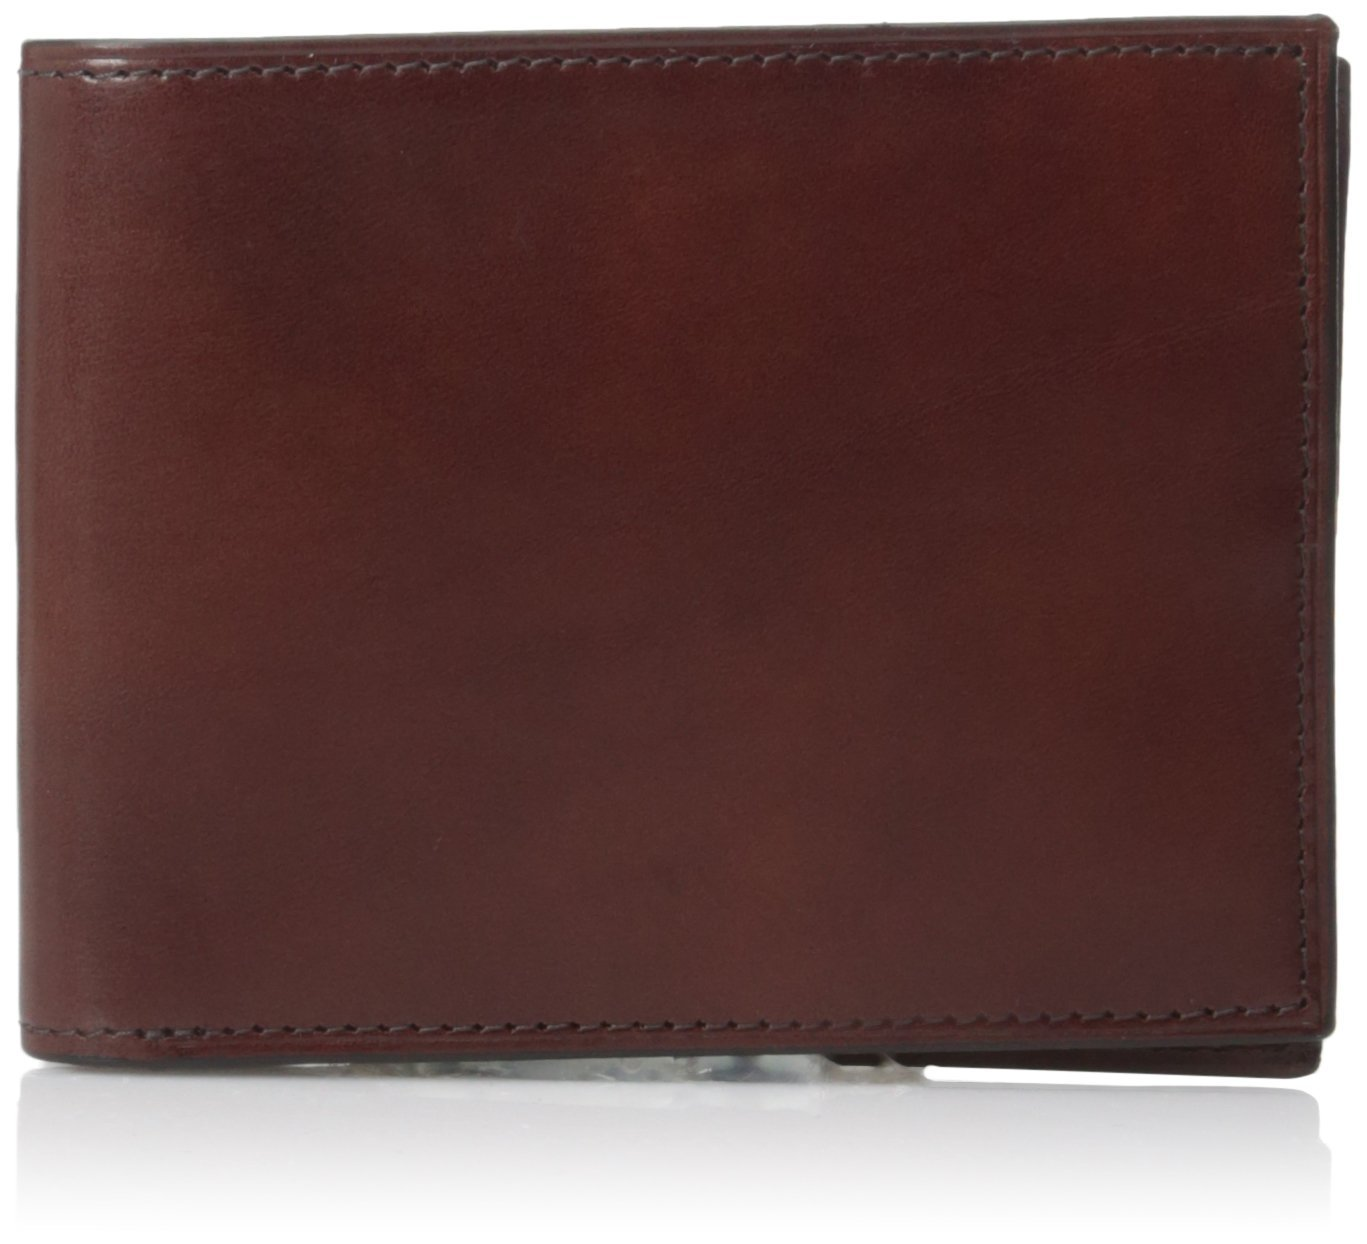 Bosca Old Leather Collection - Executive ID Wallet Wallet Dark Brown Leather by Bosca